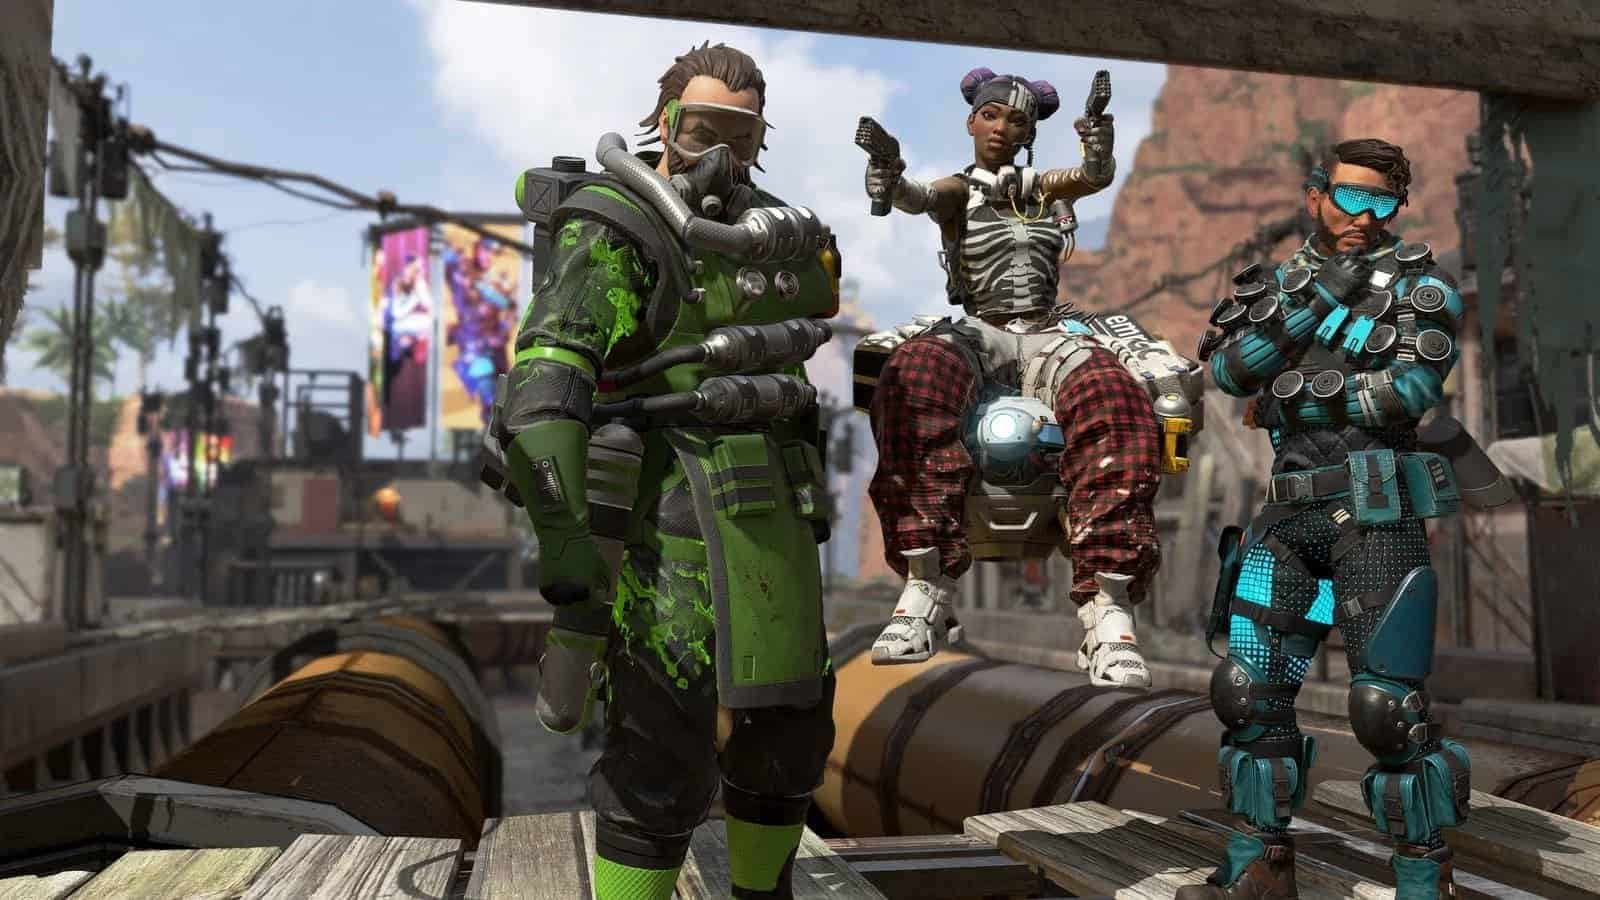 Apex Legends - Download Apex Legends for FREE - Free Cheats for Games